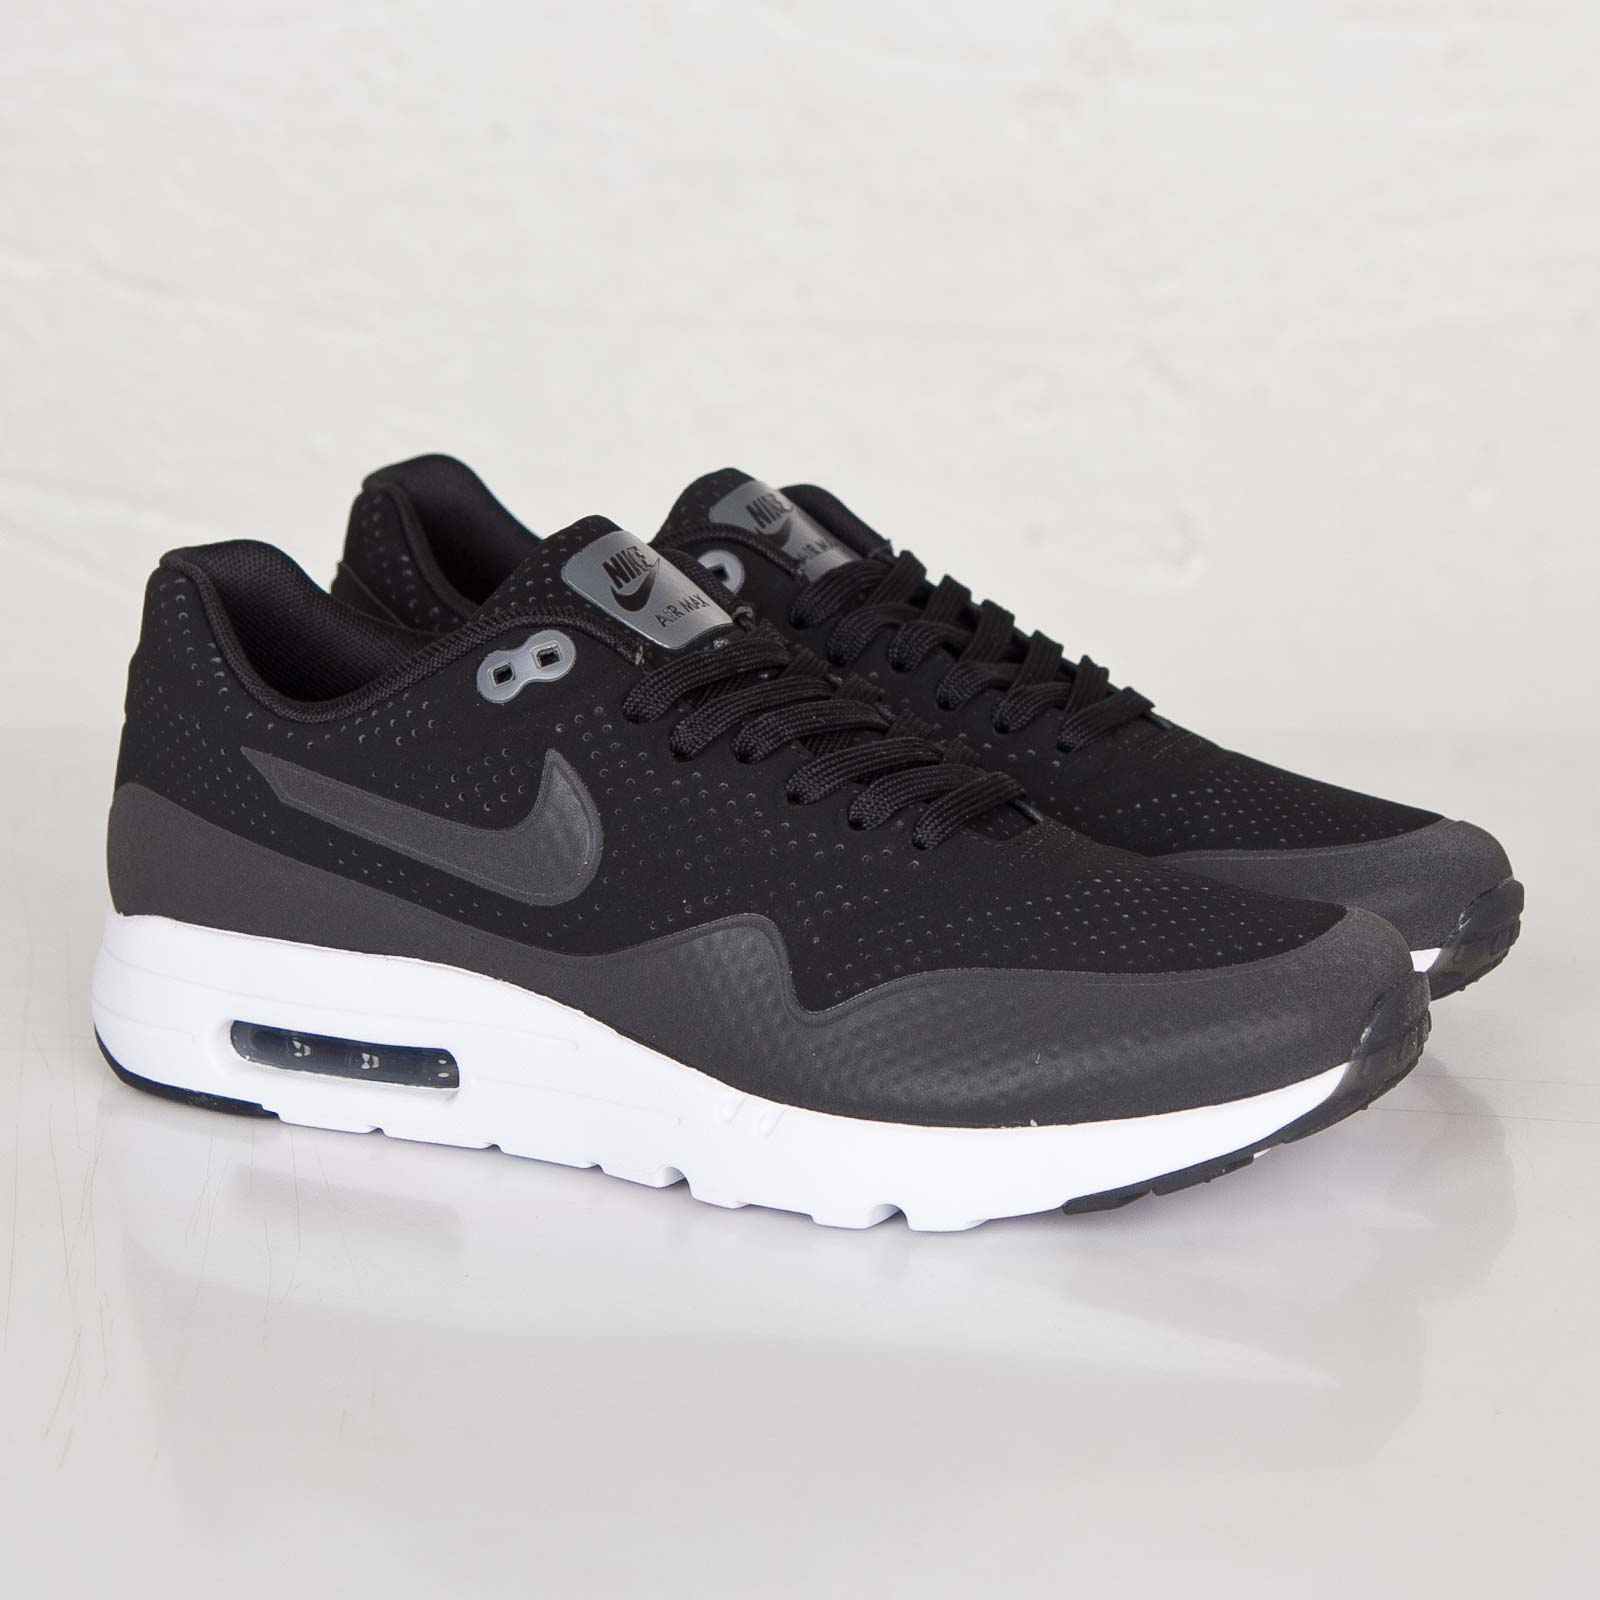 Nike Air Max 1 Ultra Moire 705297 010 Sneakersnstuff